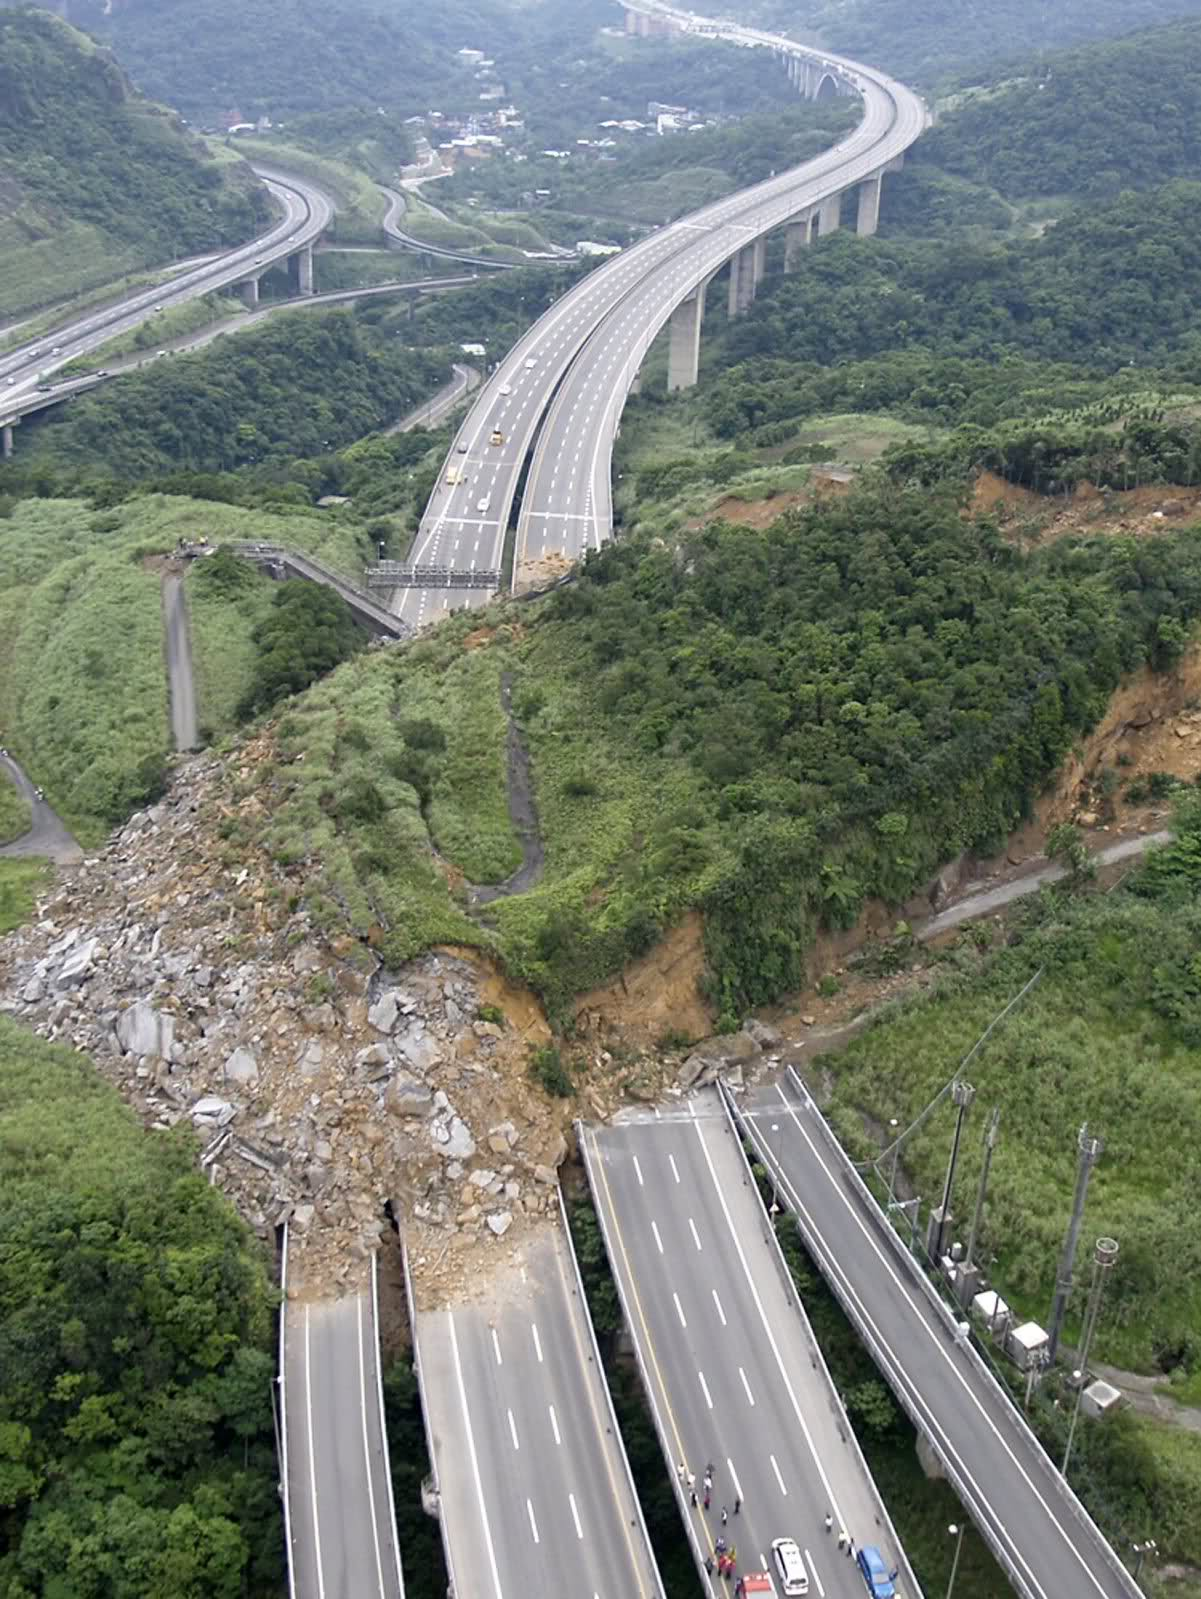 Xizhi, Taiwan - A landslide occured  on April 25, 2010 covering National Highway No. 3, the highway that links Taipei to Keelung in north Taiwan.